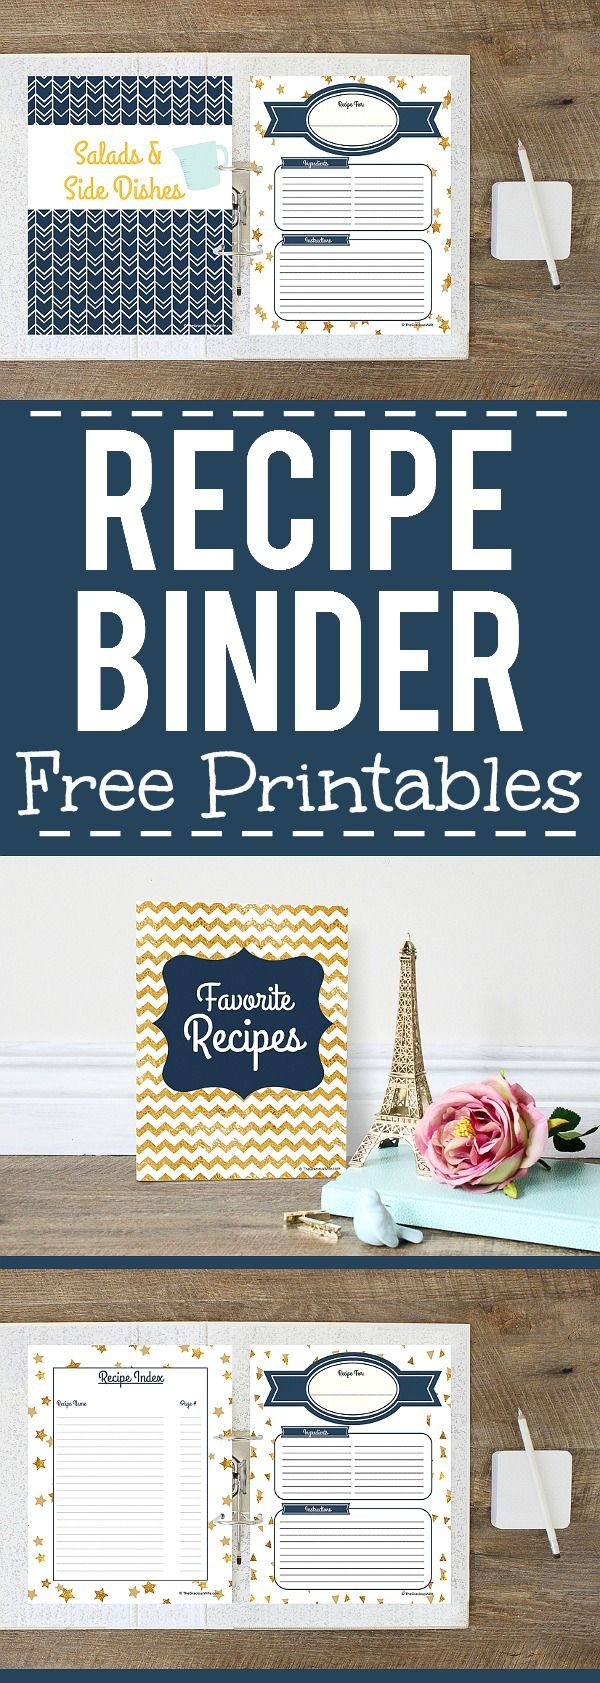 How to make a recipe binder with free diy recipe binder printables how to make a recipe binder with free diy recipe binder printables solutioingenieria Choice Image